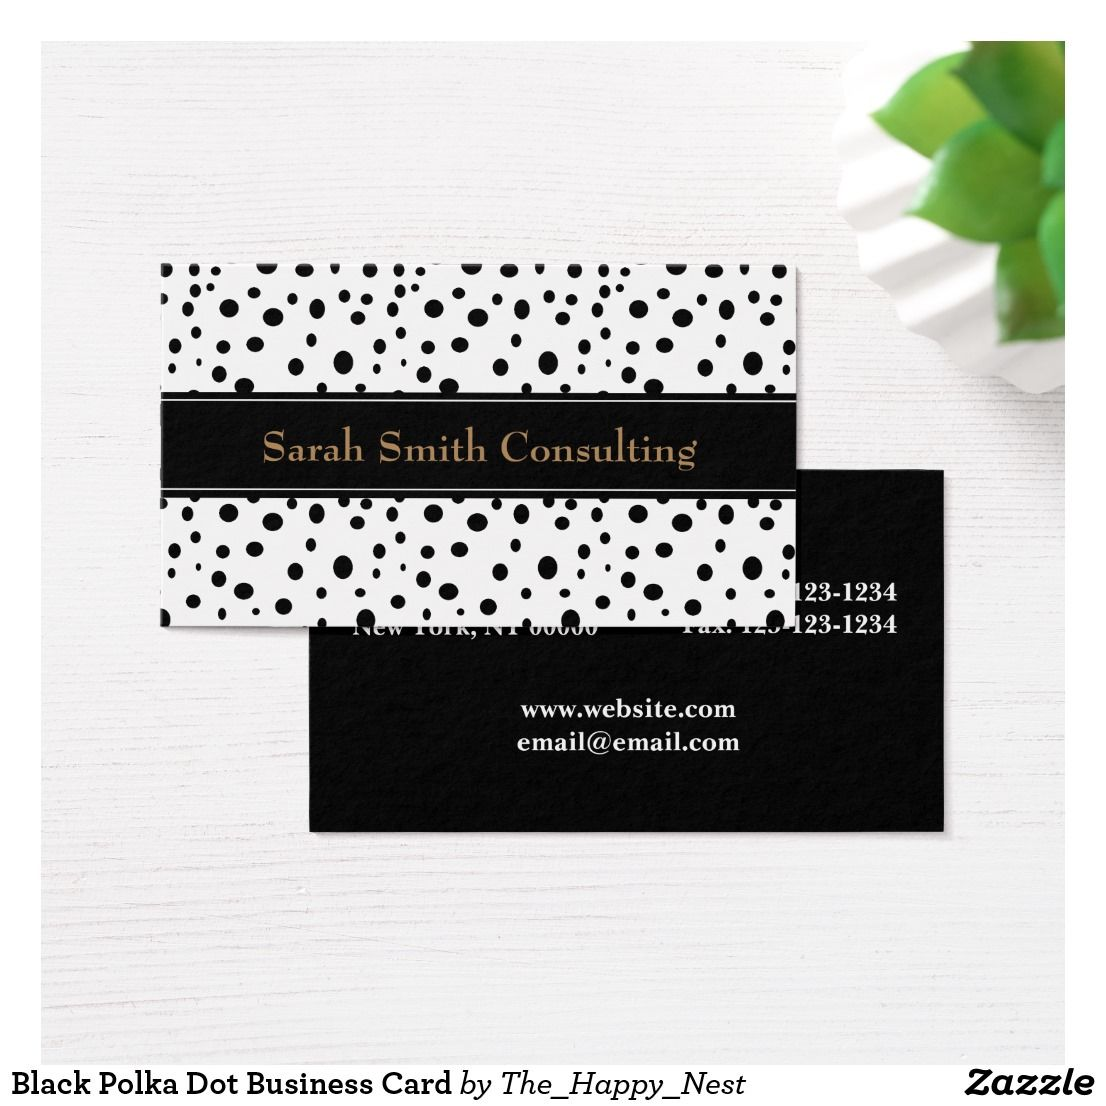 Black Polka Dot Business Card | Products